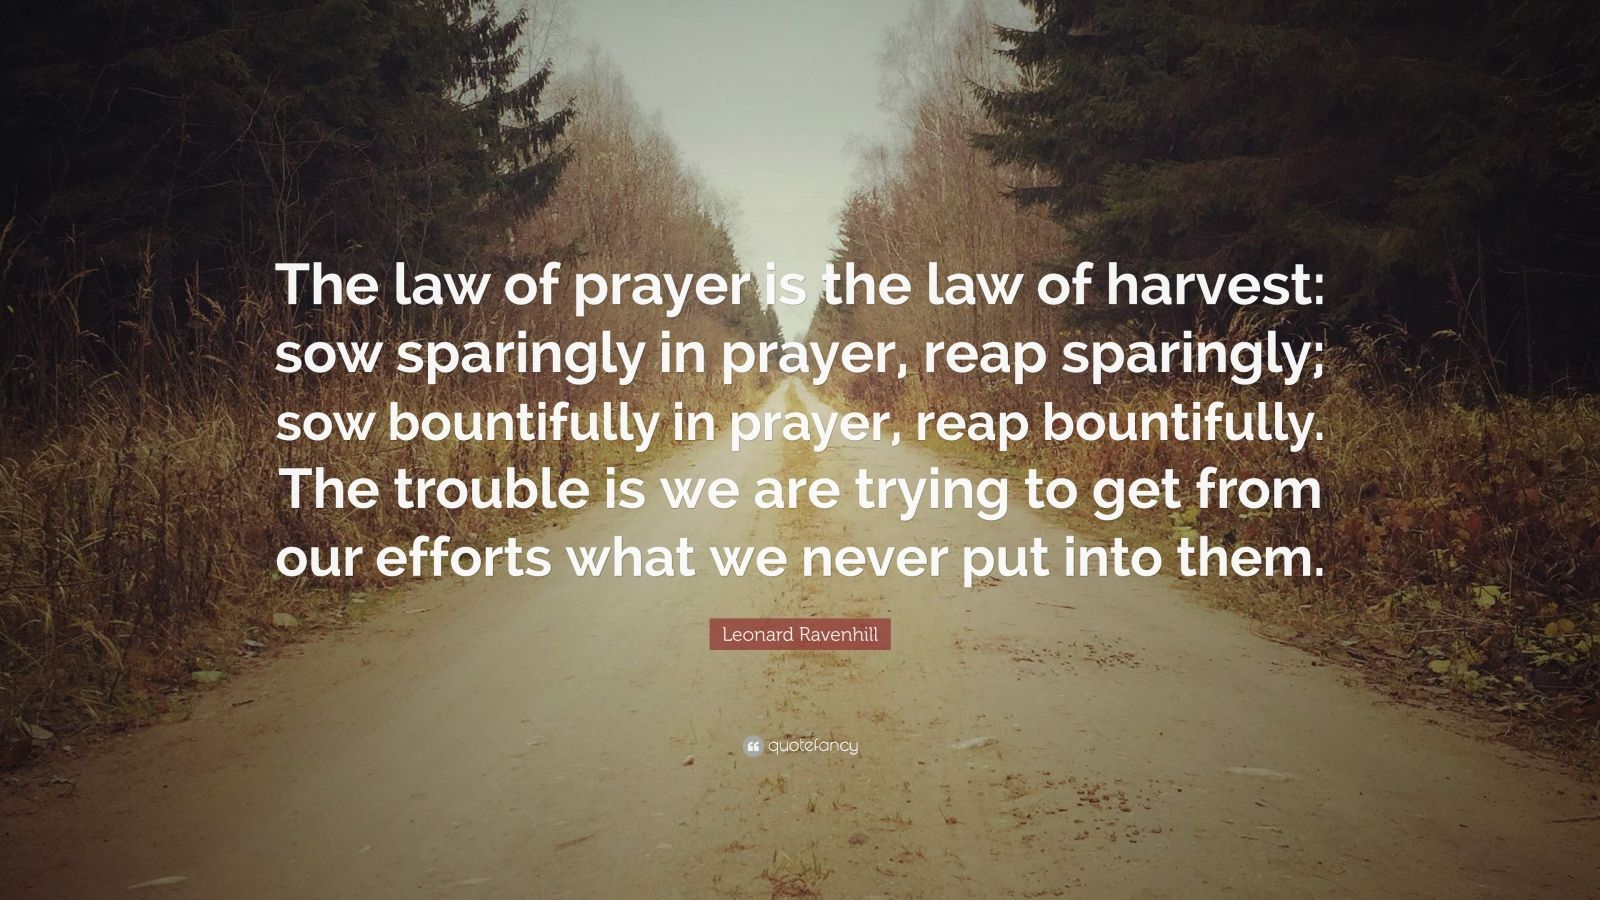 """Leonard Ravenhill Quote: """"The law of prayer is the law of harvest: sow sparingly in prayer, reap sparingly; sow bountifully in prayer, reap bountifully. The trouble is we are trying to get from our efforts what we never put into them."""""""